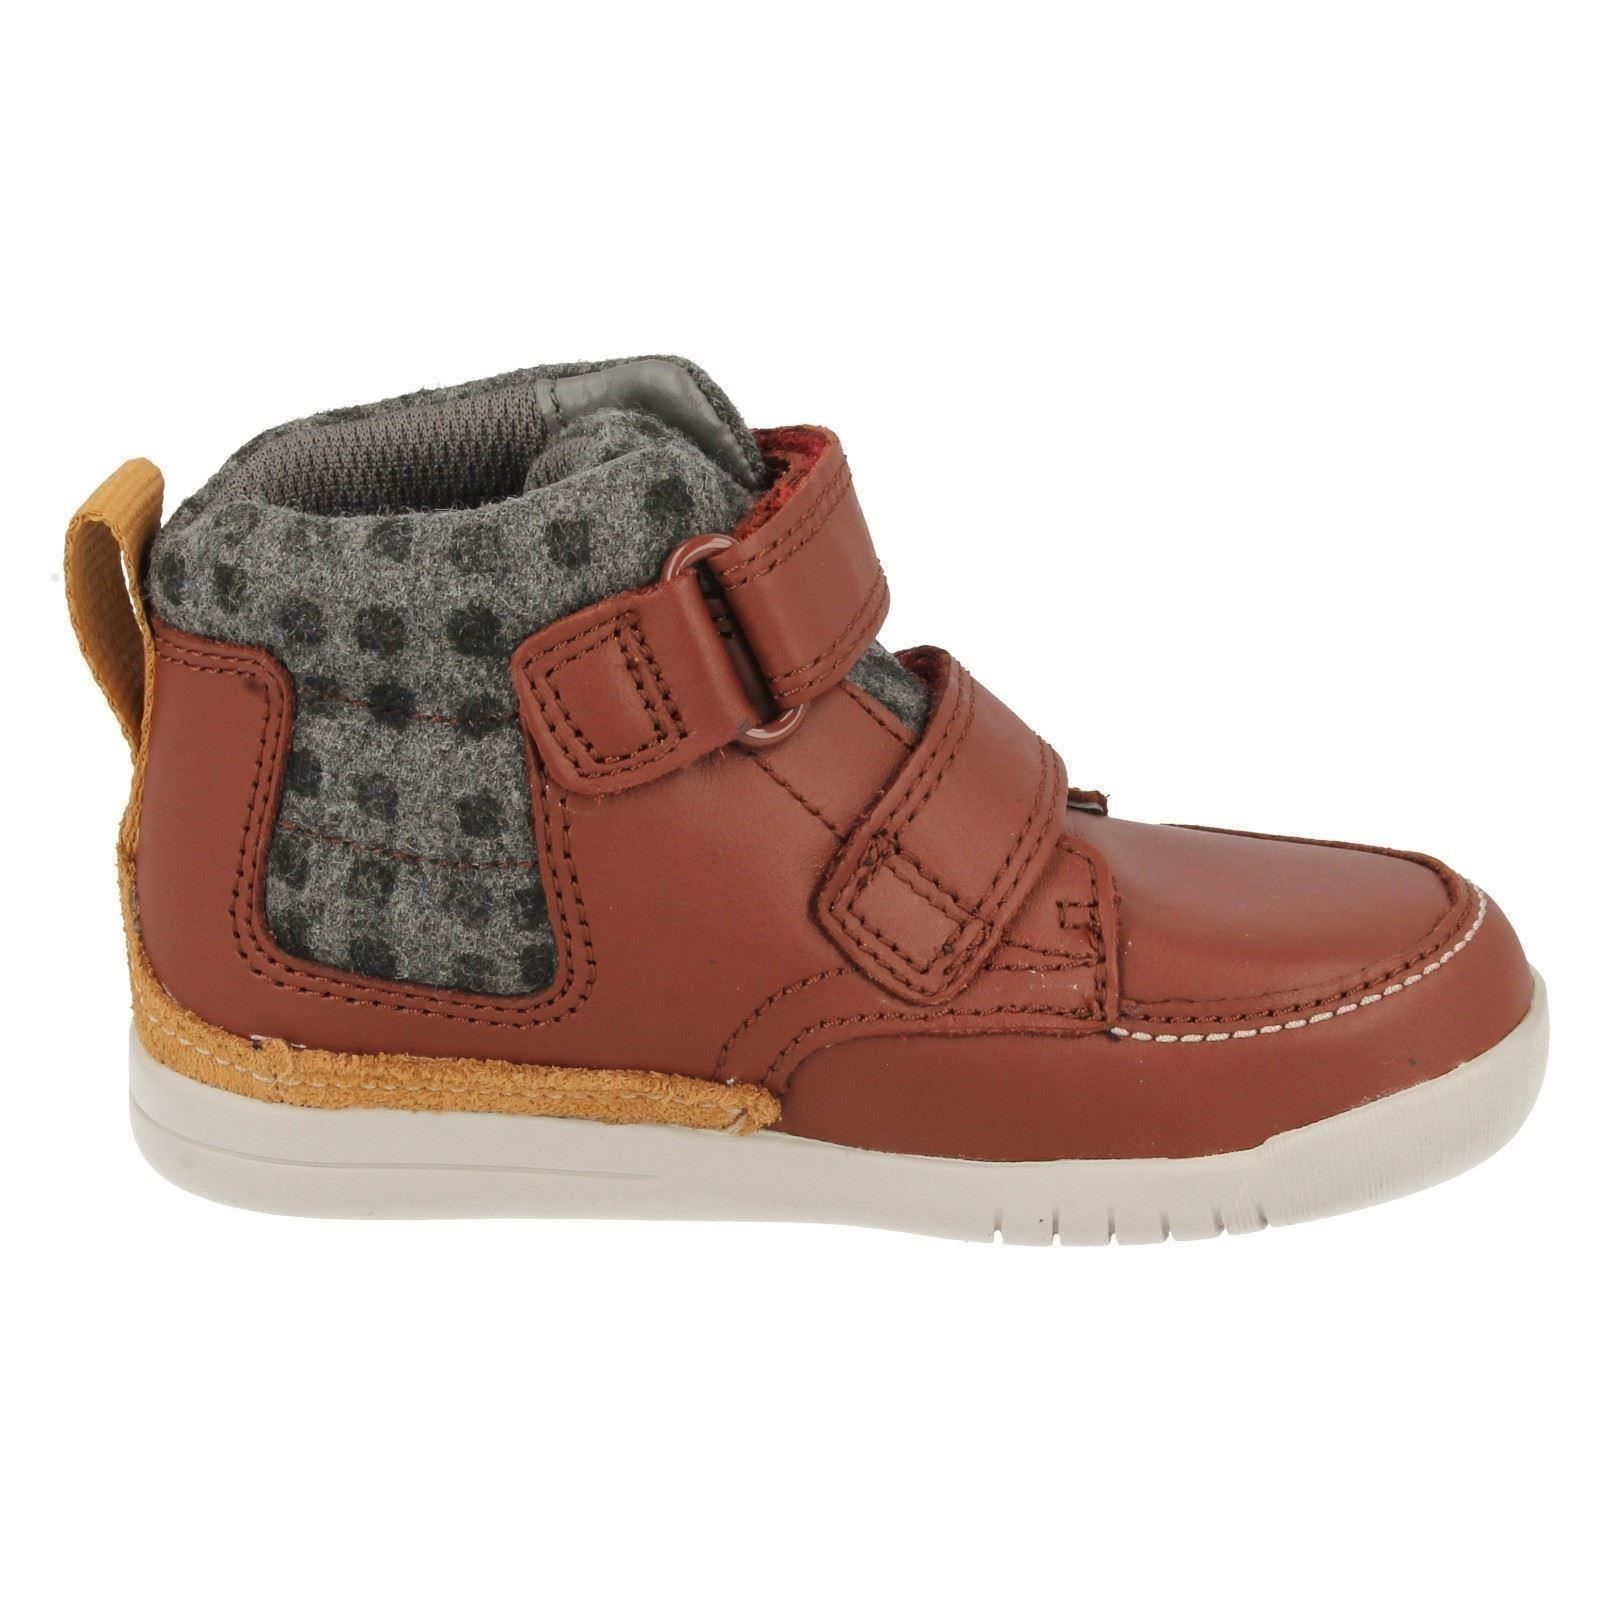 Infant Clarks Boys Ankle Boots Crazy Ben